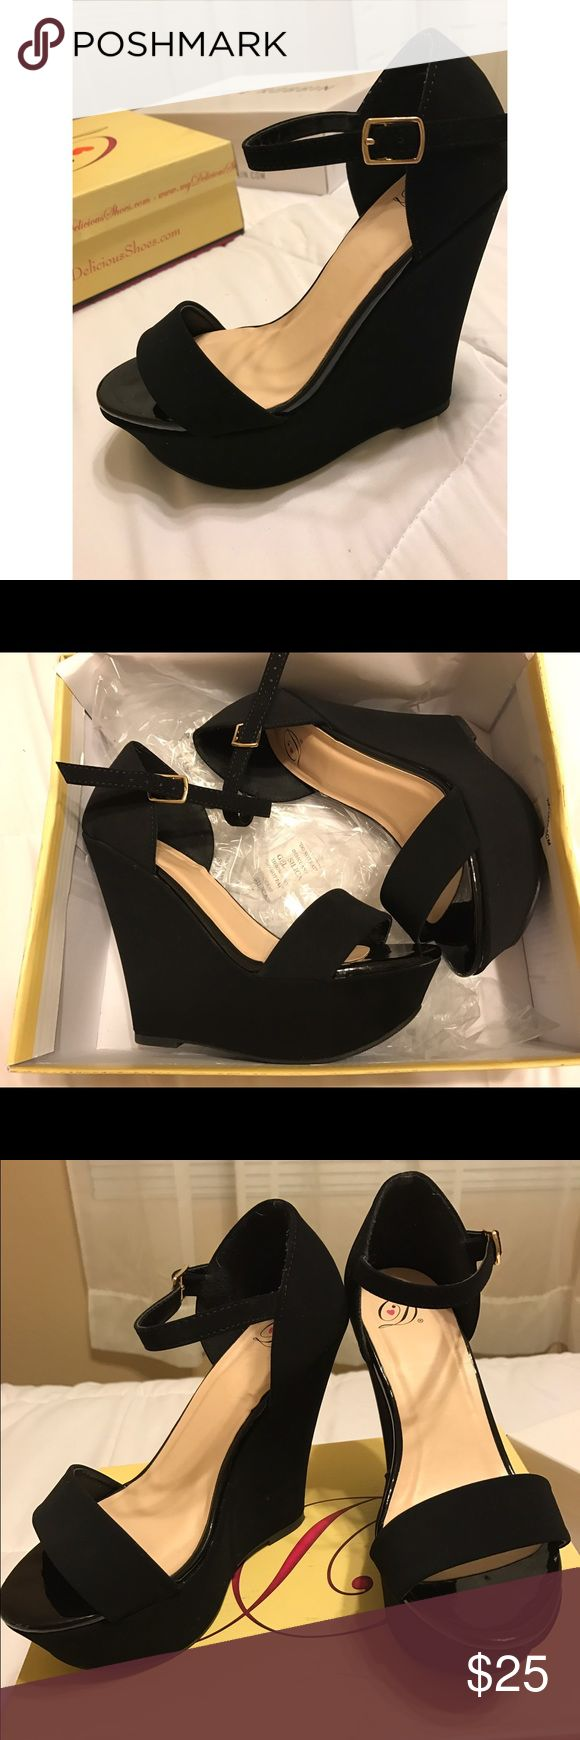 Black Strap Wedges Brand New! Black Strap Wedges. Cute pair of ankle strap black wedges for any outfit and to show off your pedicure! Great condition and in need of new ownership. Shoes Wedges